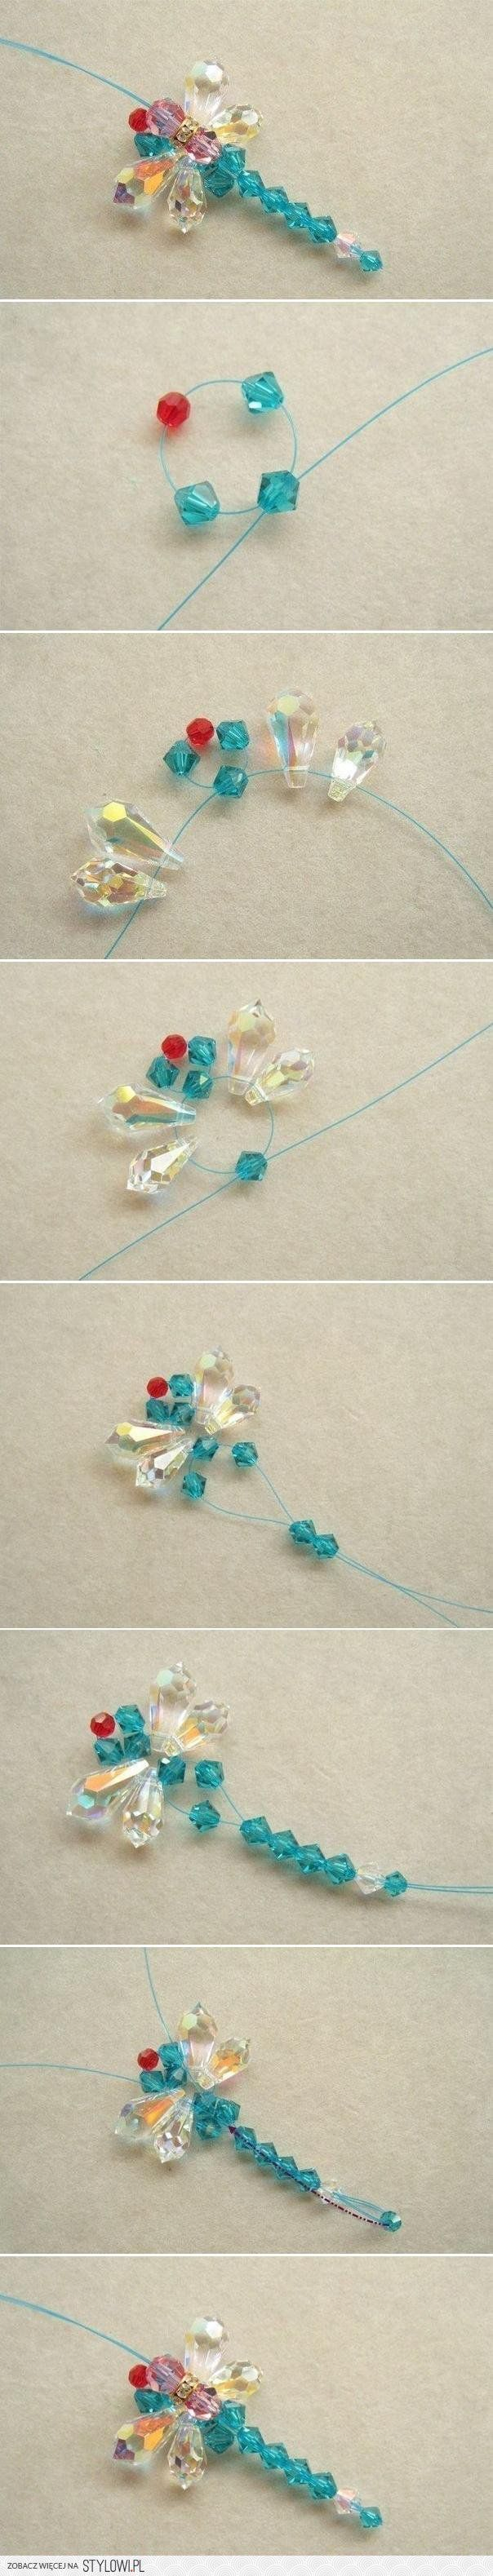 DIY Beaded Dragonfly DIY Projects | UsefulDIY.com na Stylowi.pl